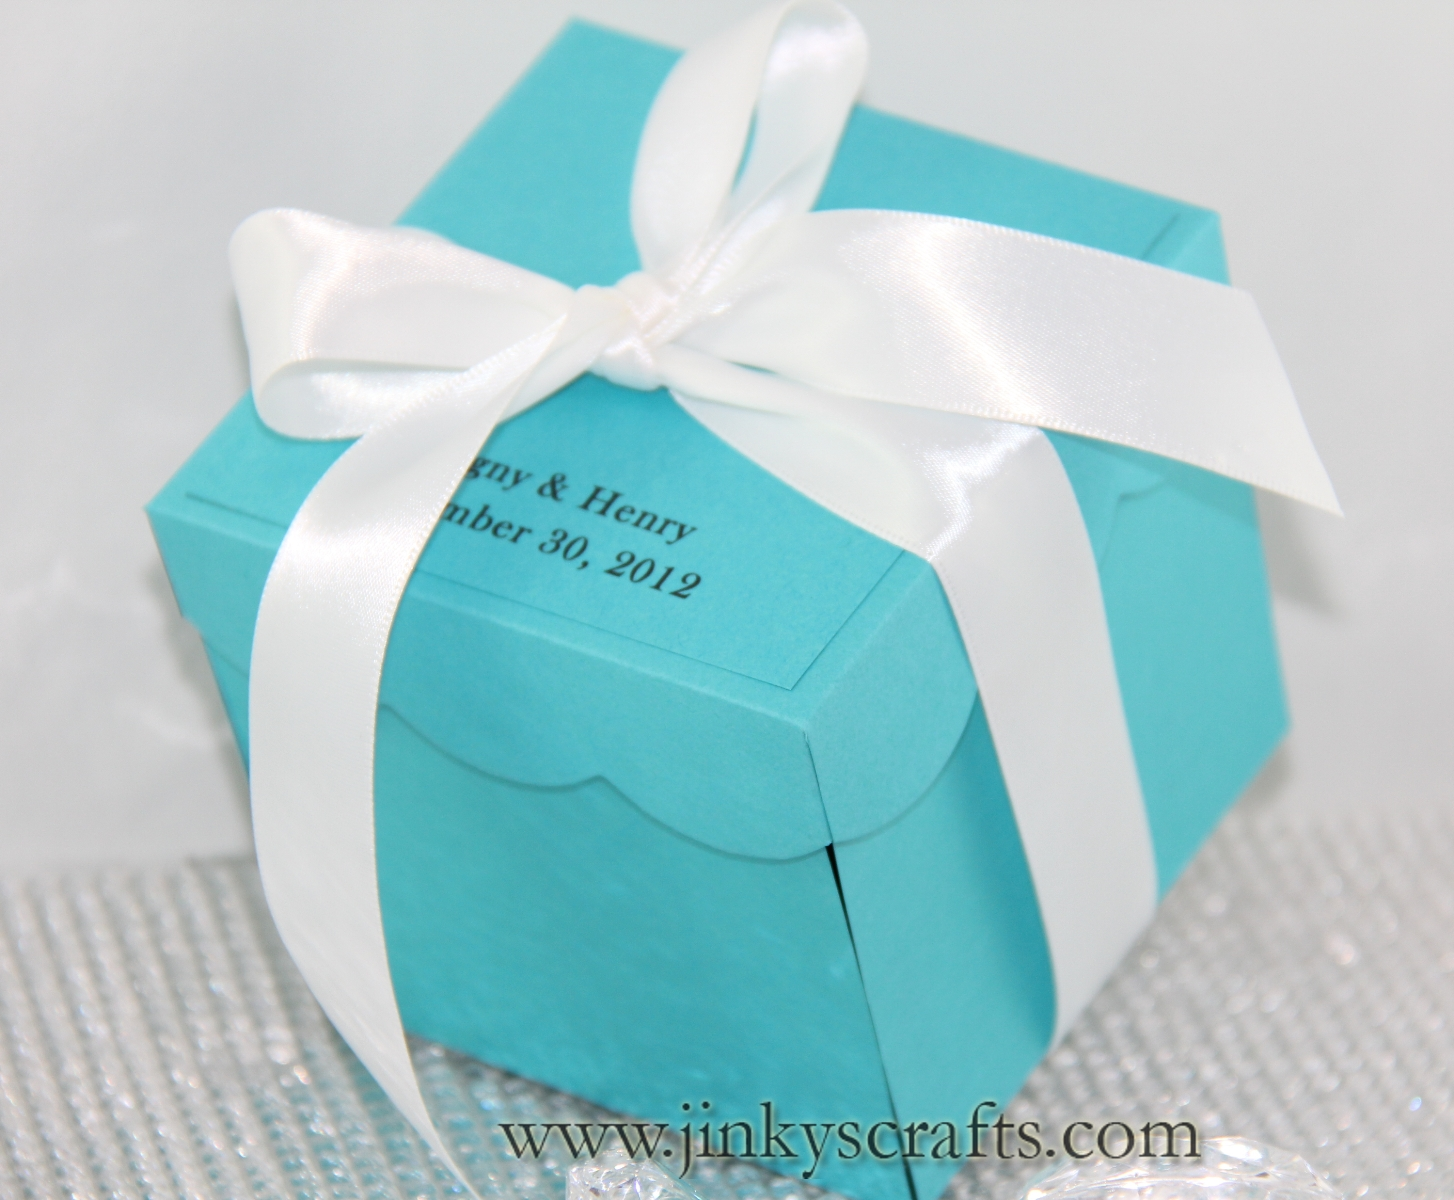 Tiffany theme Exploding Box Invitations1